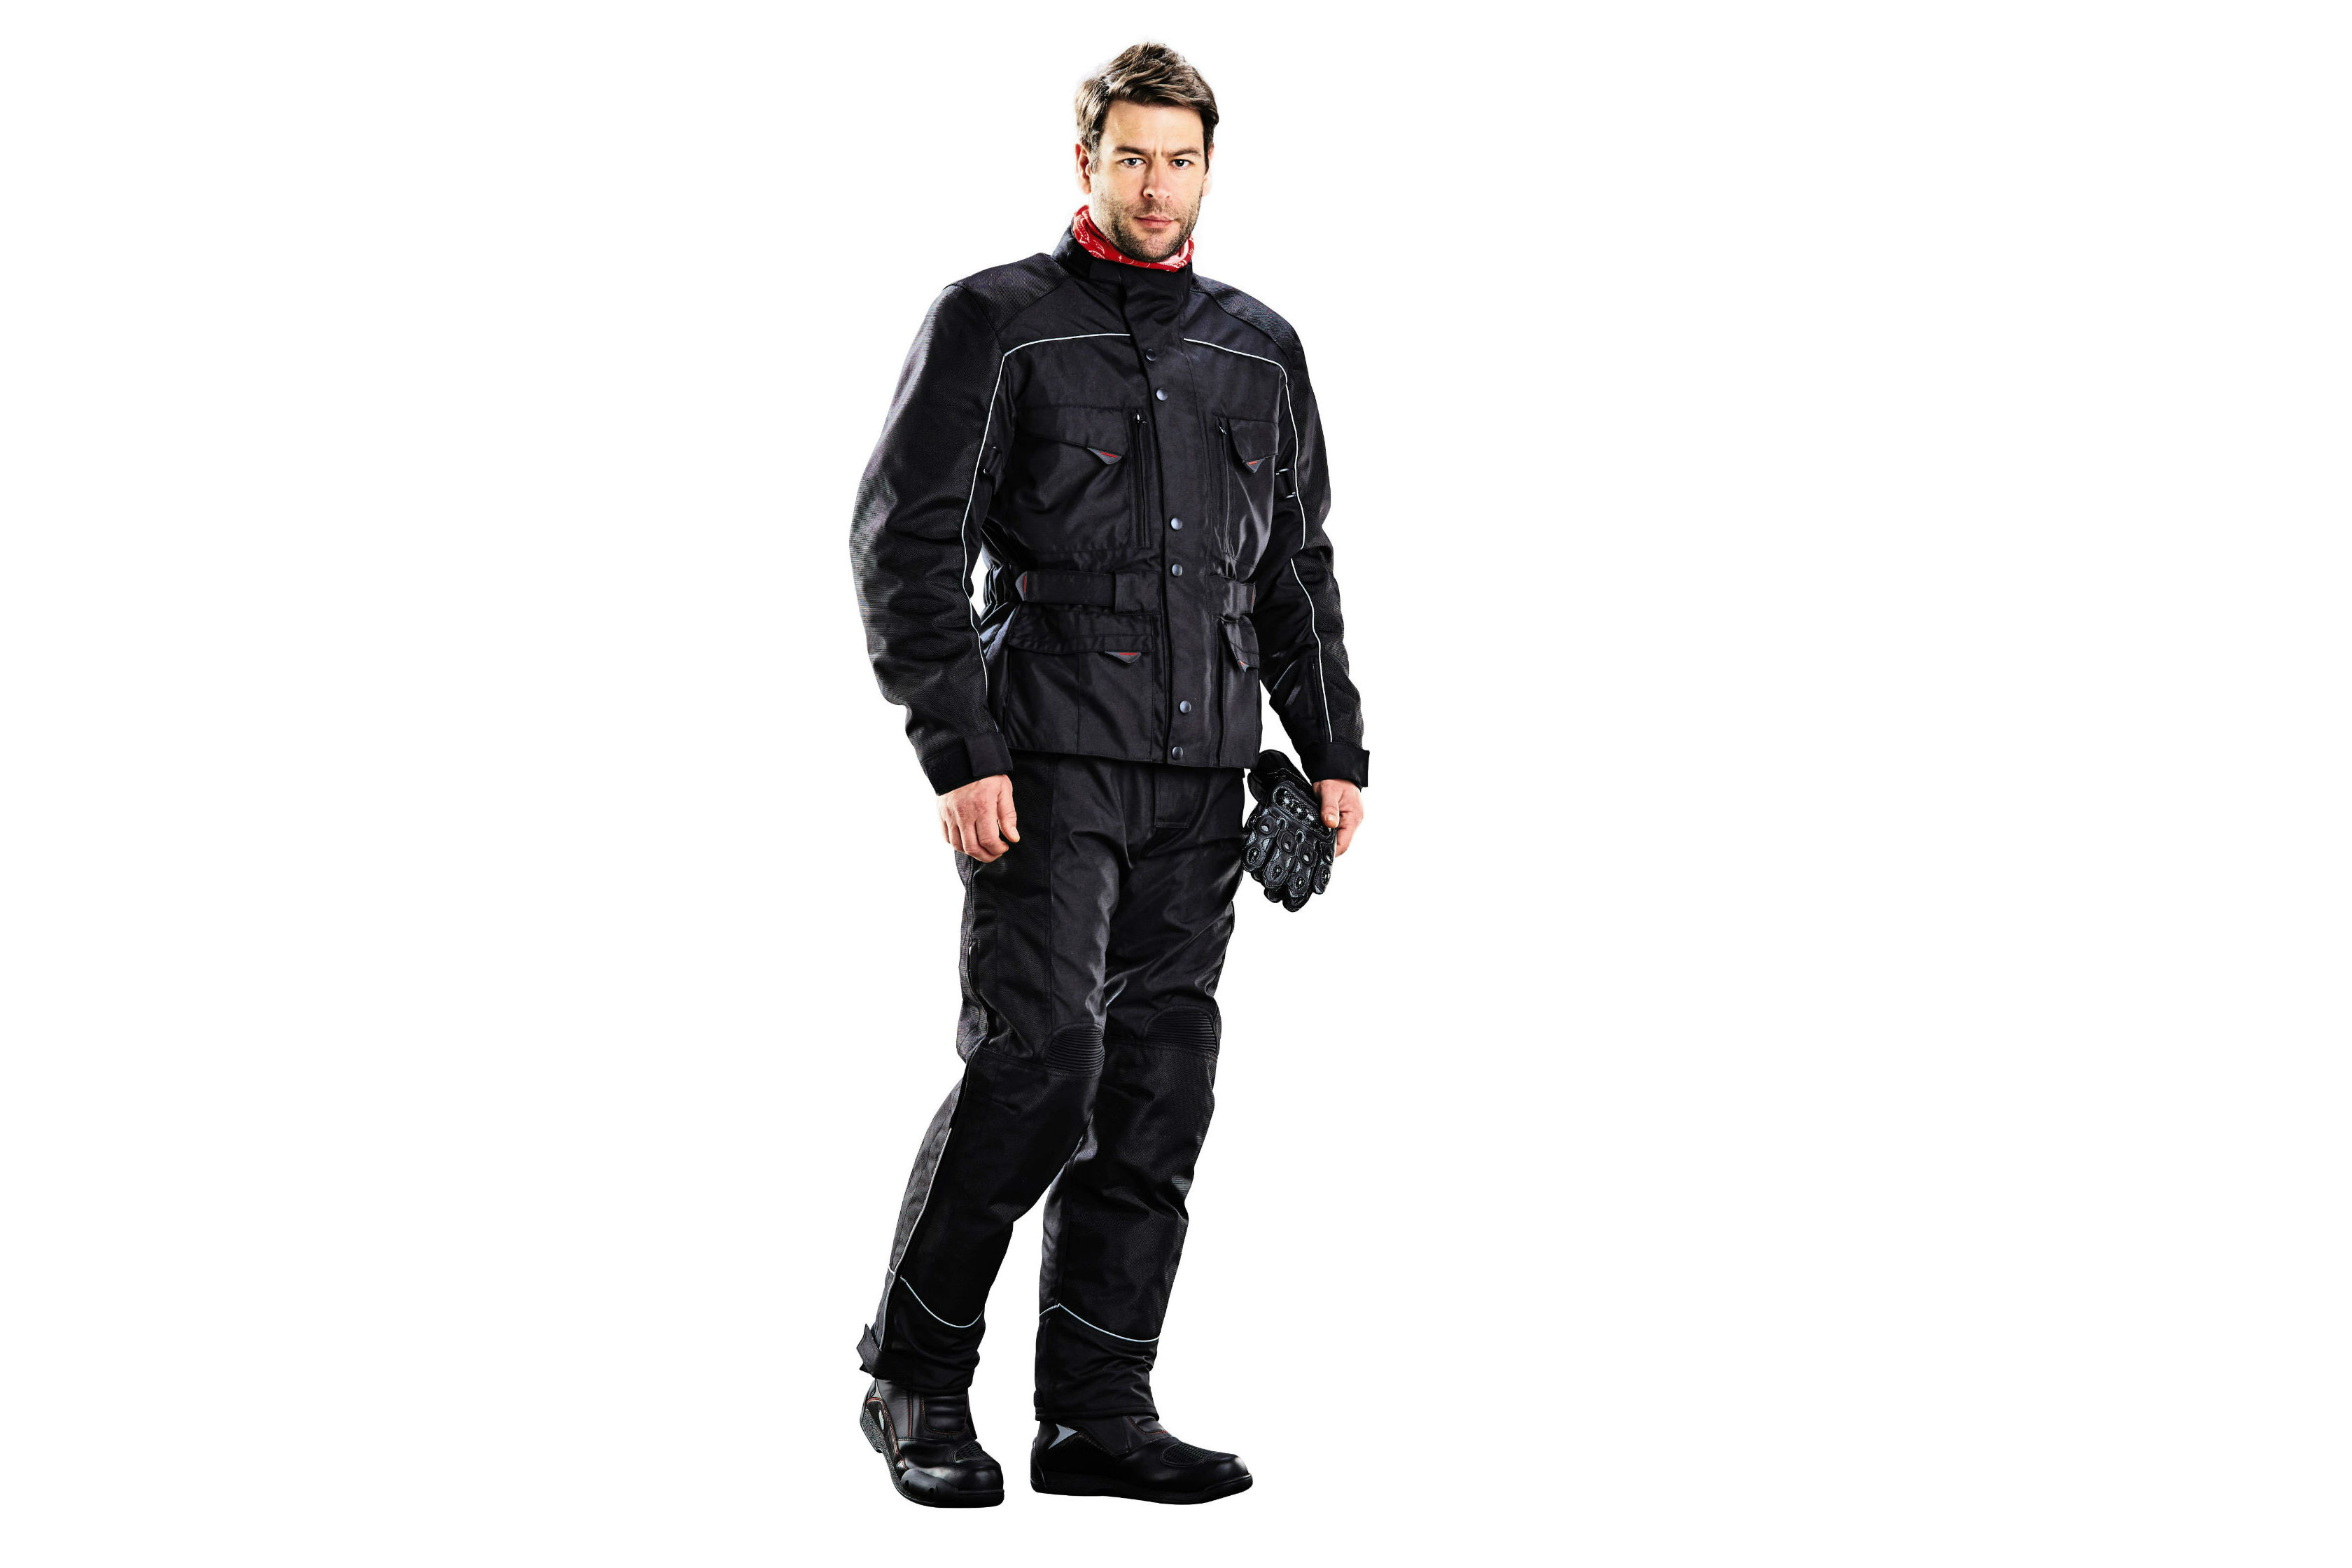 New Aldi Motorcycle Clothing Range Launched Visordown